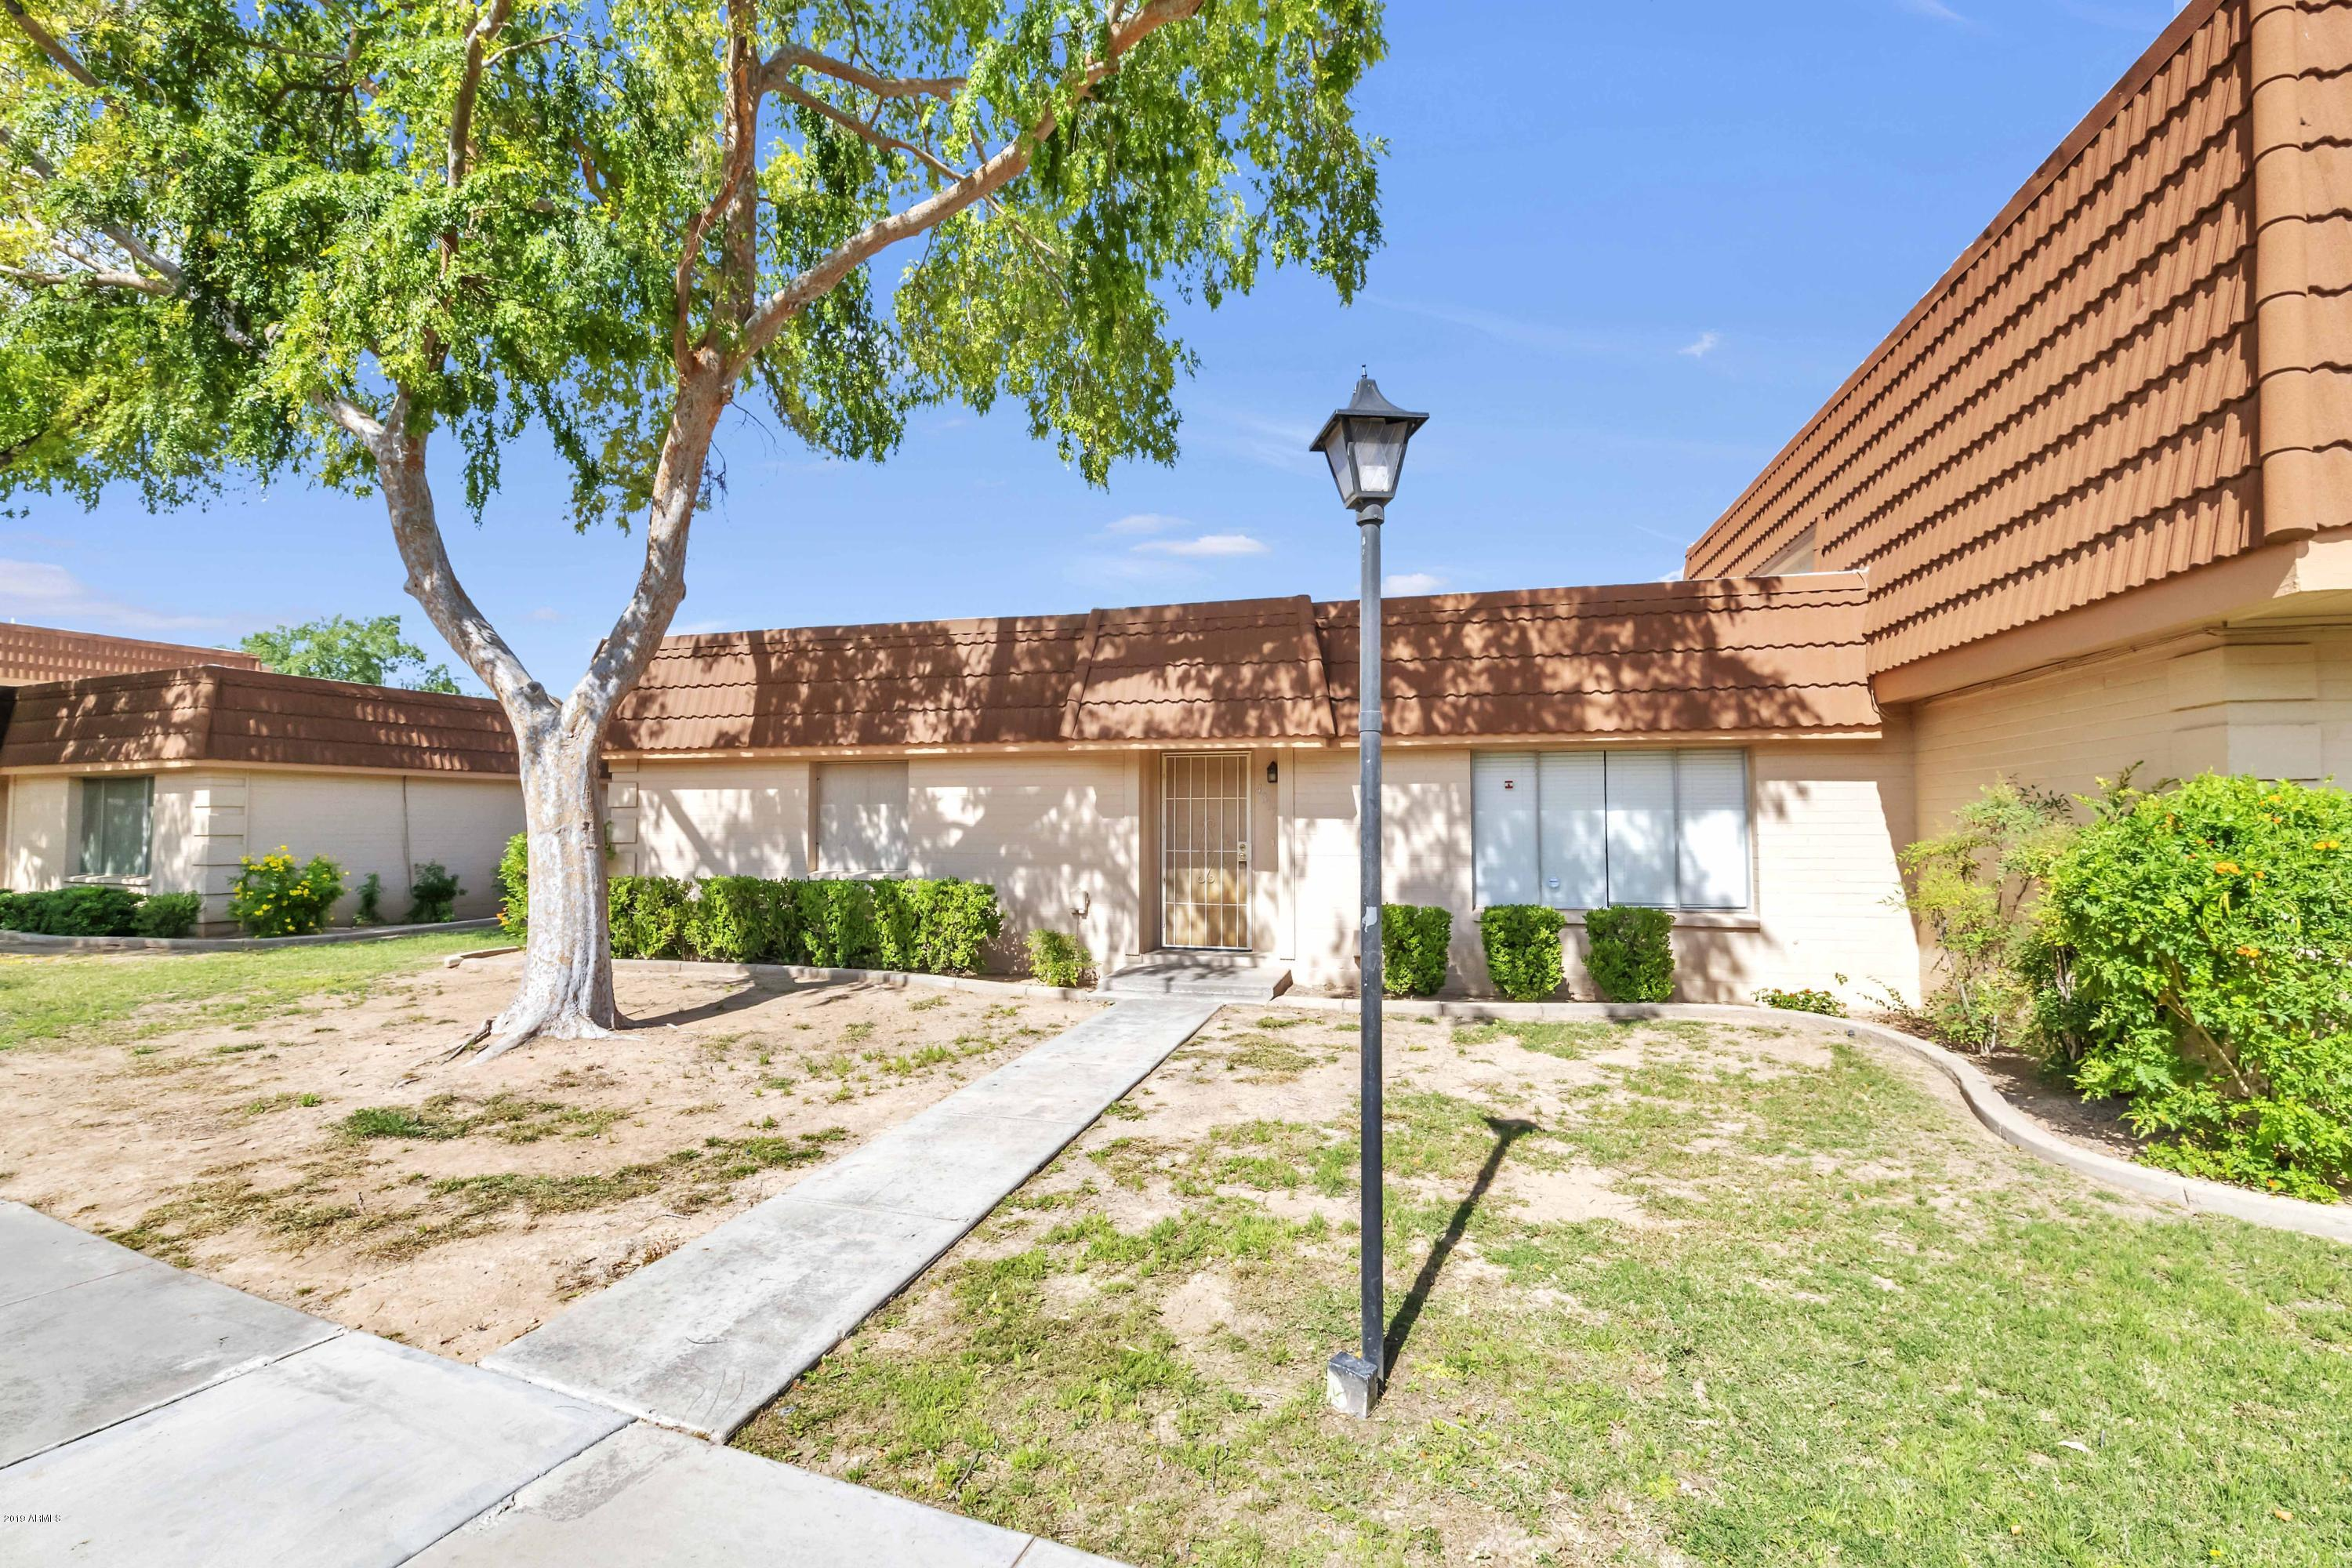 Photo of 4817 S BIRCH Street, Tempe, AZ 85282